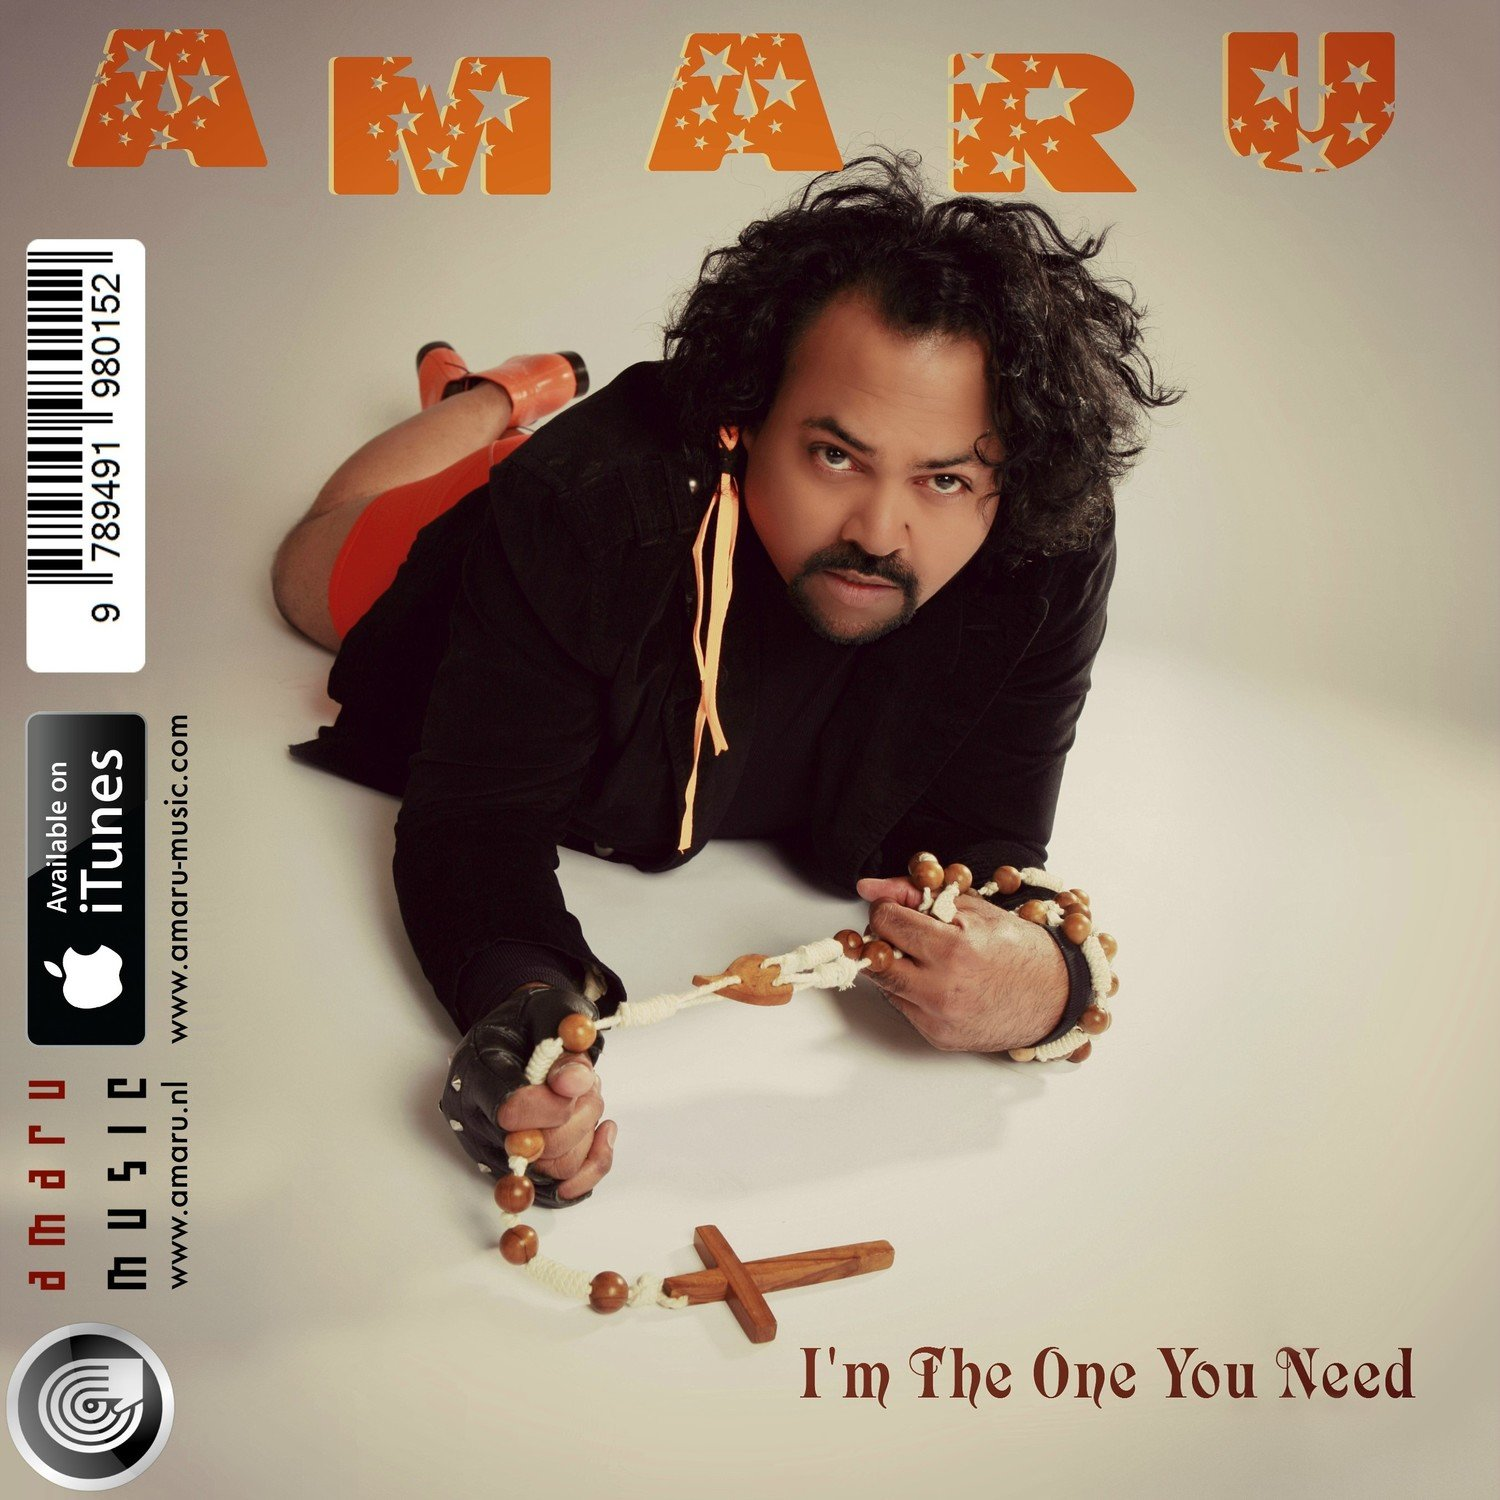 AMARU - I'm The One You Need (2-track CD Single)